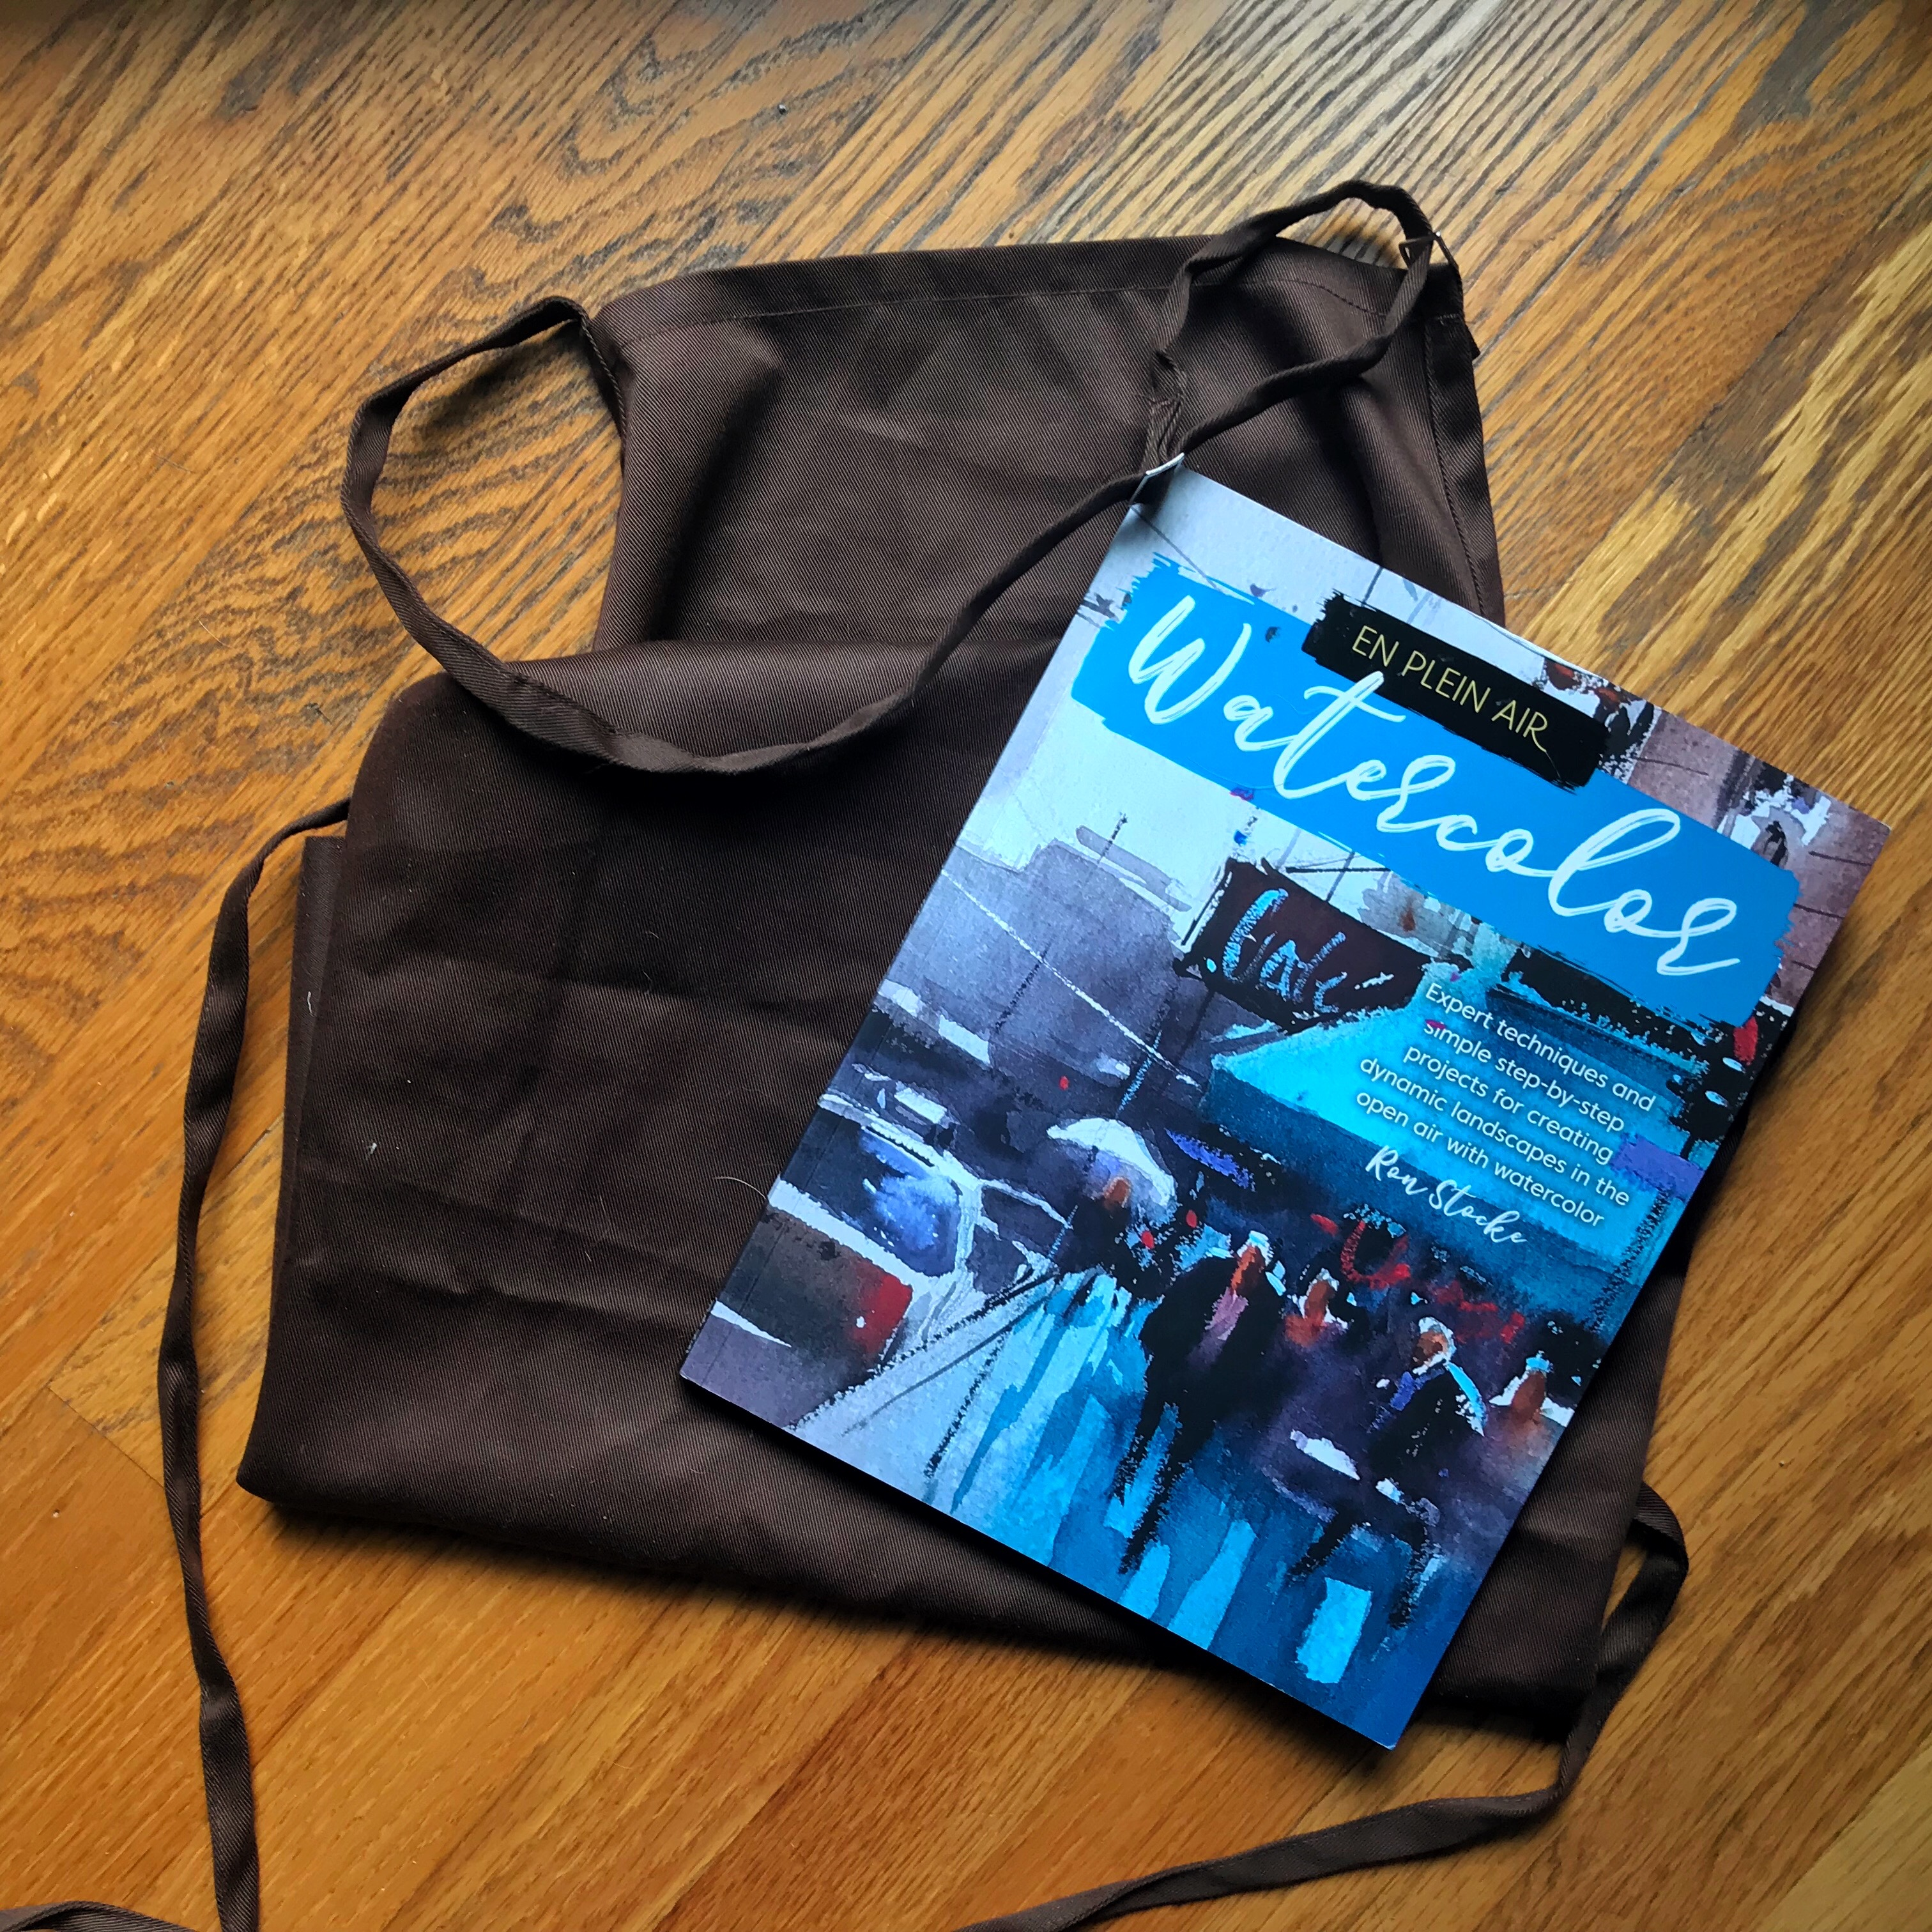 Plein Air apron and reference book